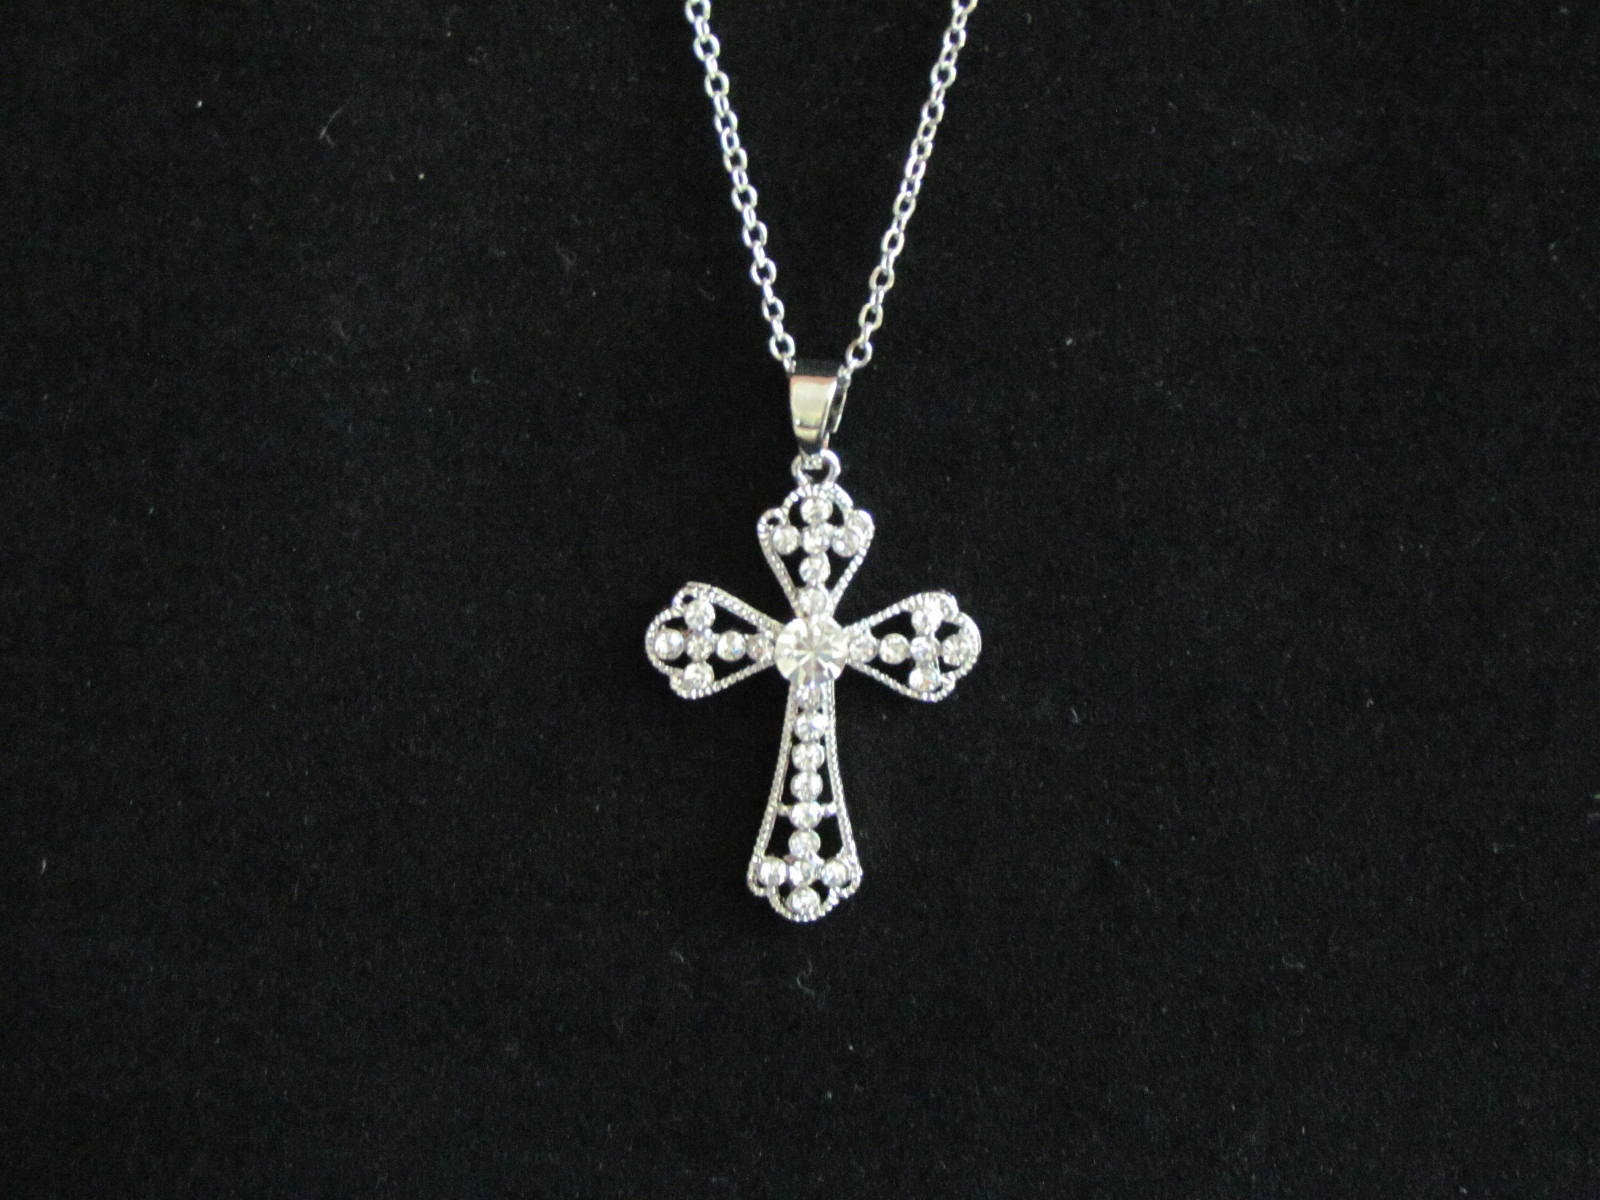 Sparkling Cross Necklace Pertaining To Recent Sparkling Cross Pendant Necklaces (View 1 of 25)